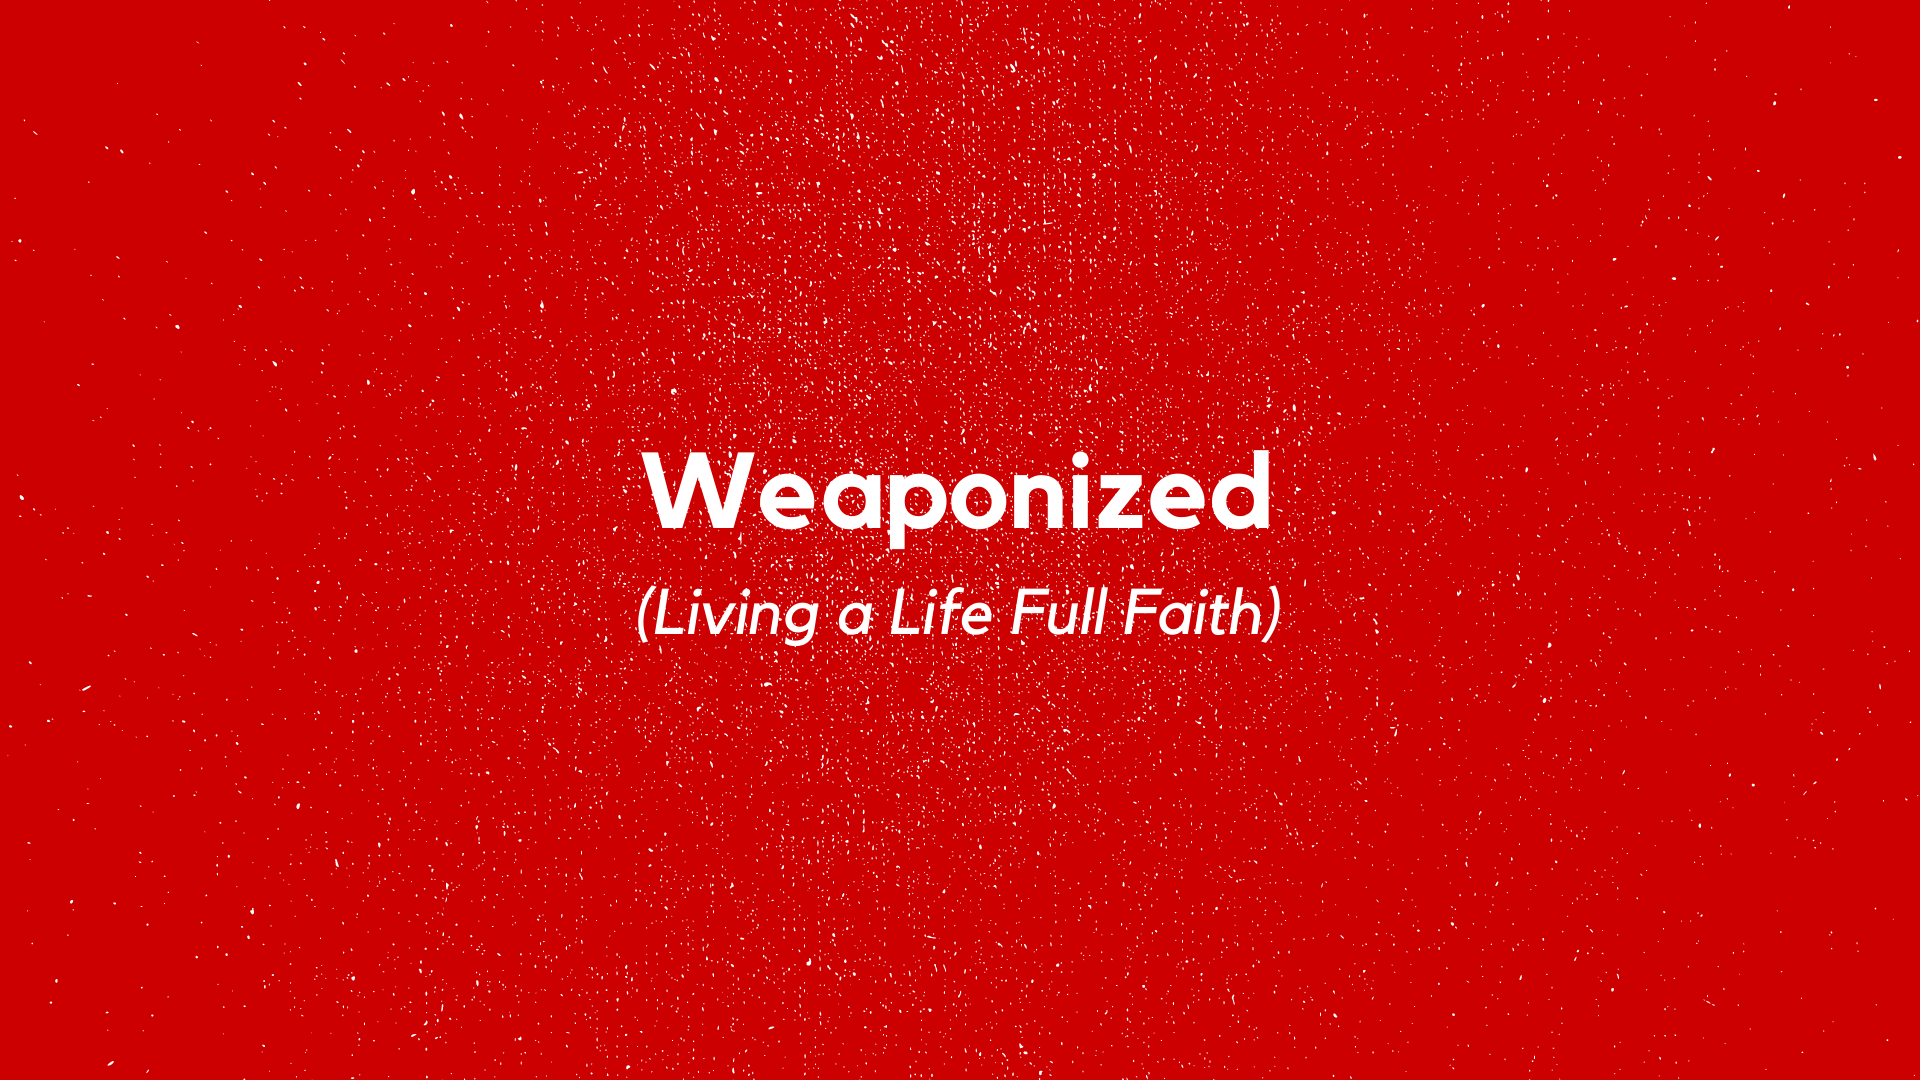 Weaponized(Living a Life Full Faith)